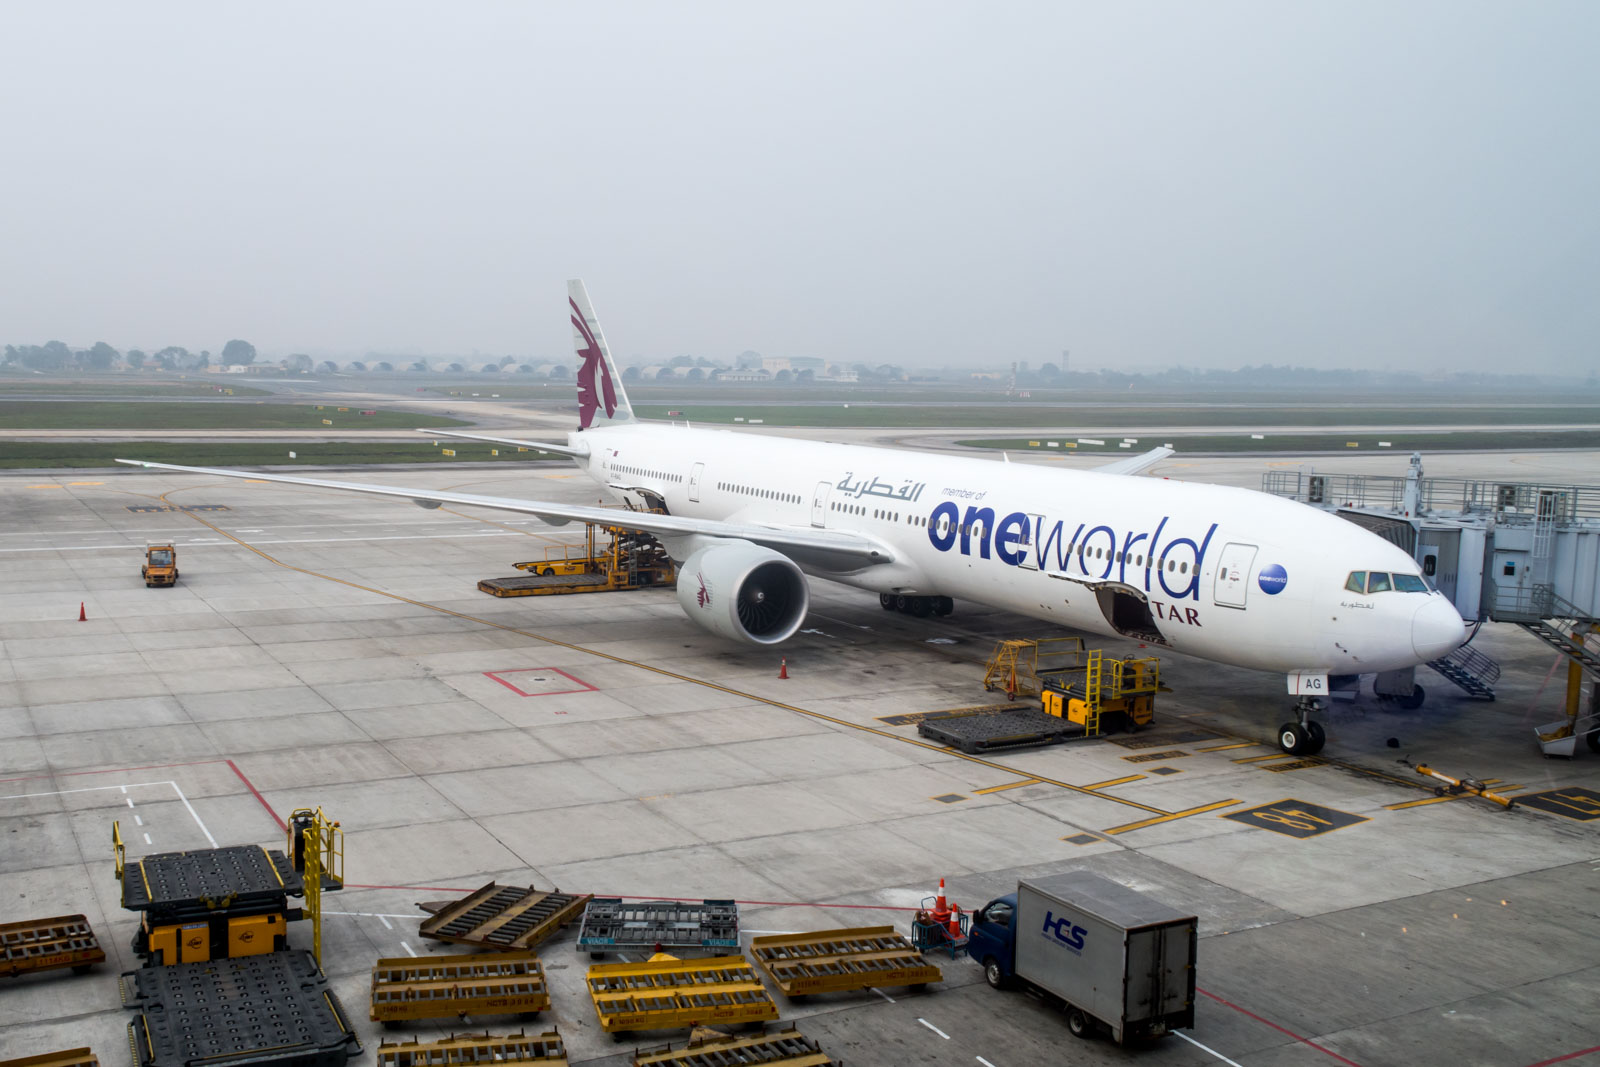 Qatar Airways Boeing 777-300ER OneWorld Livery at Hanoi Airport